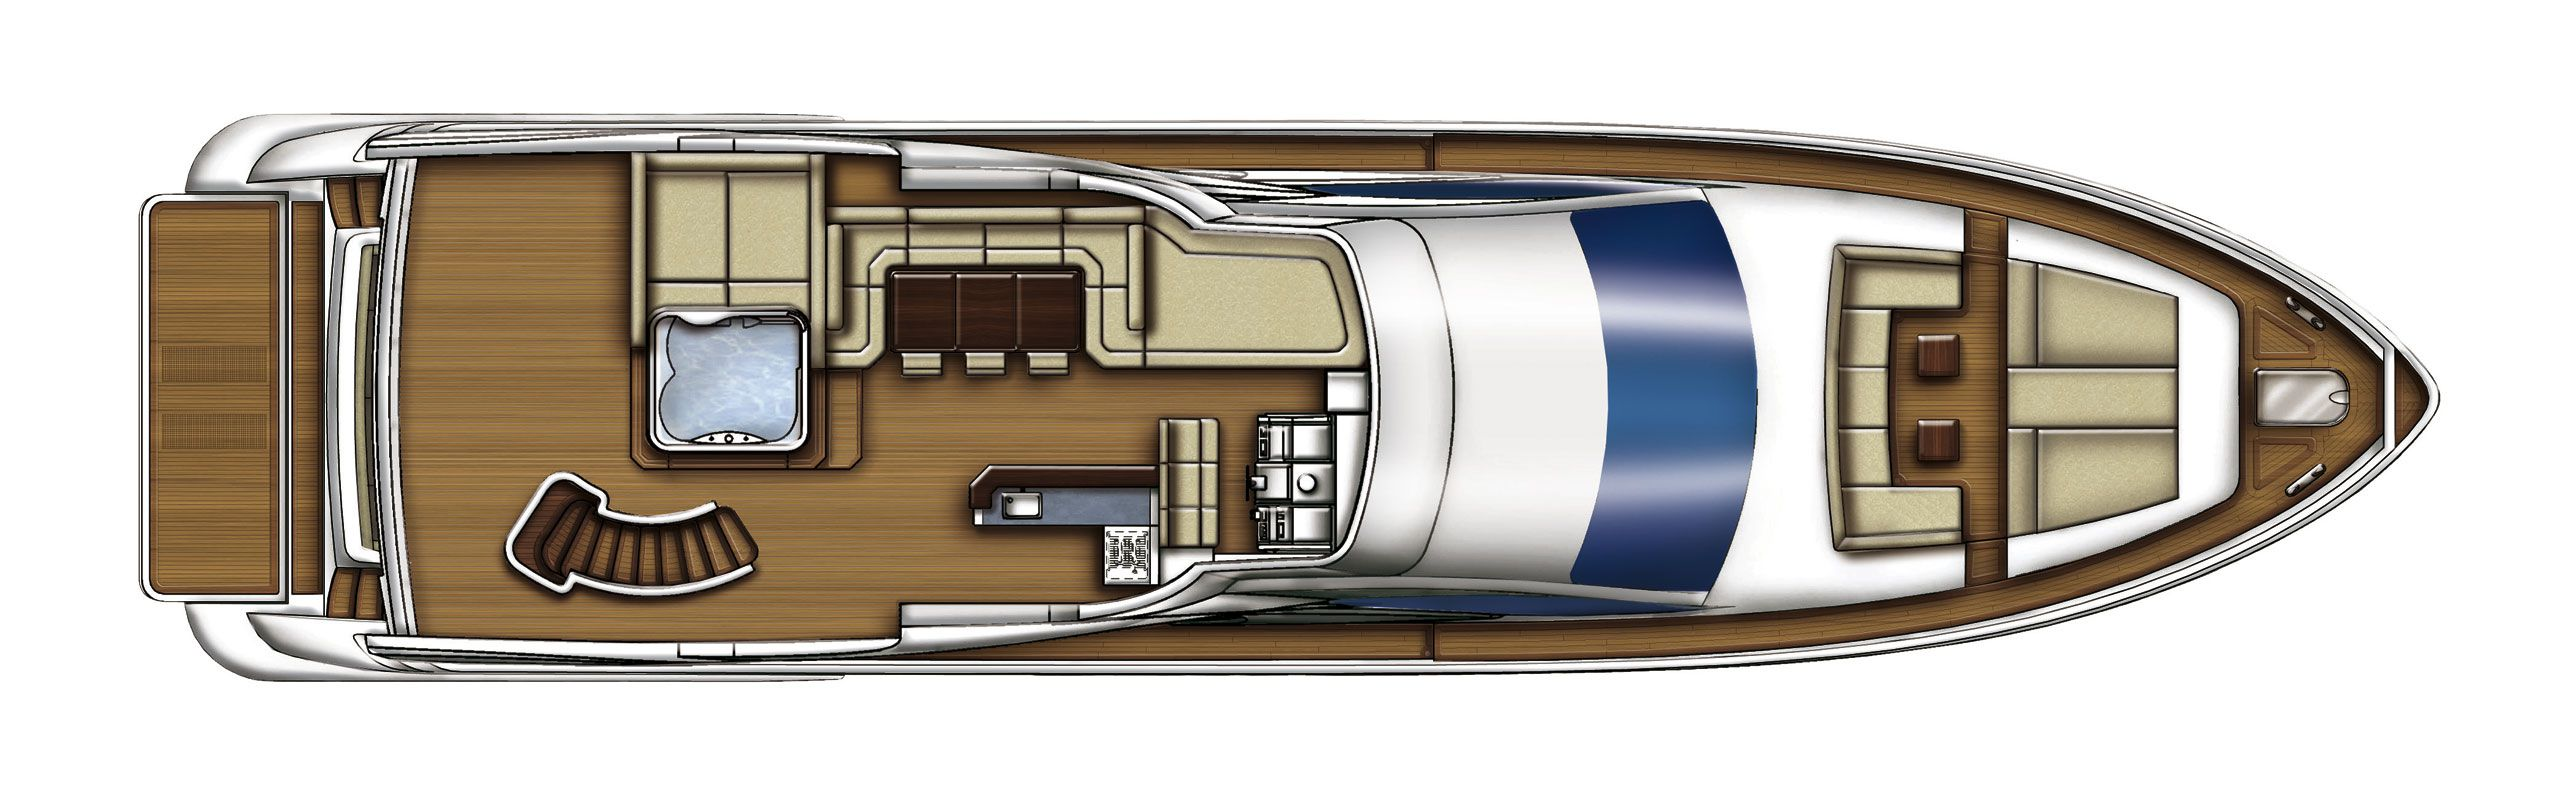 Azimut 88 cs yachting for Innenarchitekt yacht